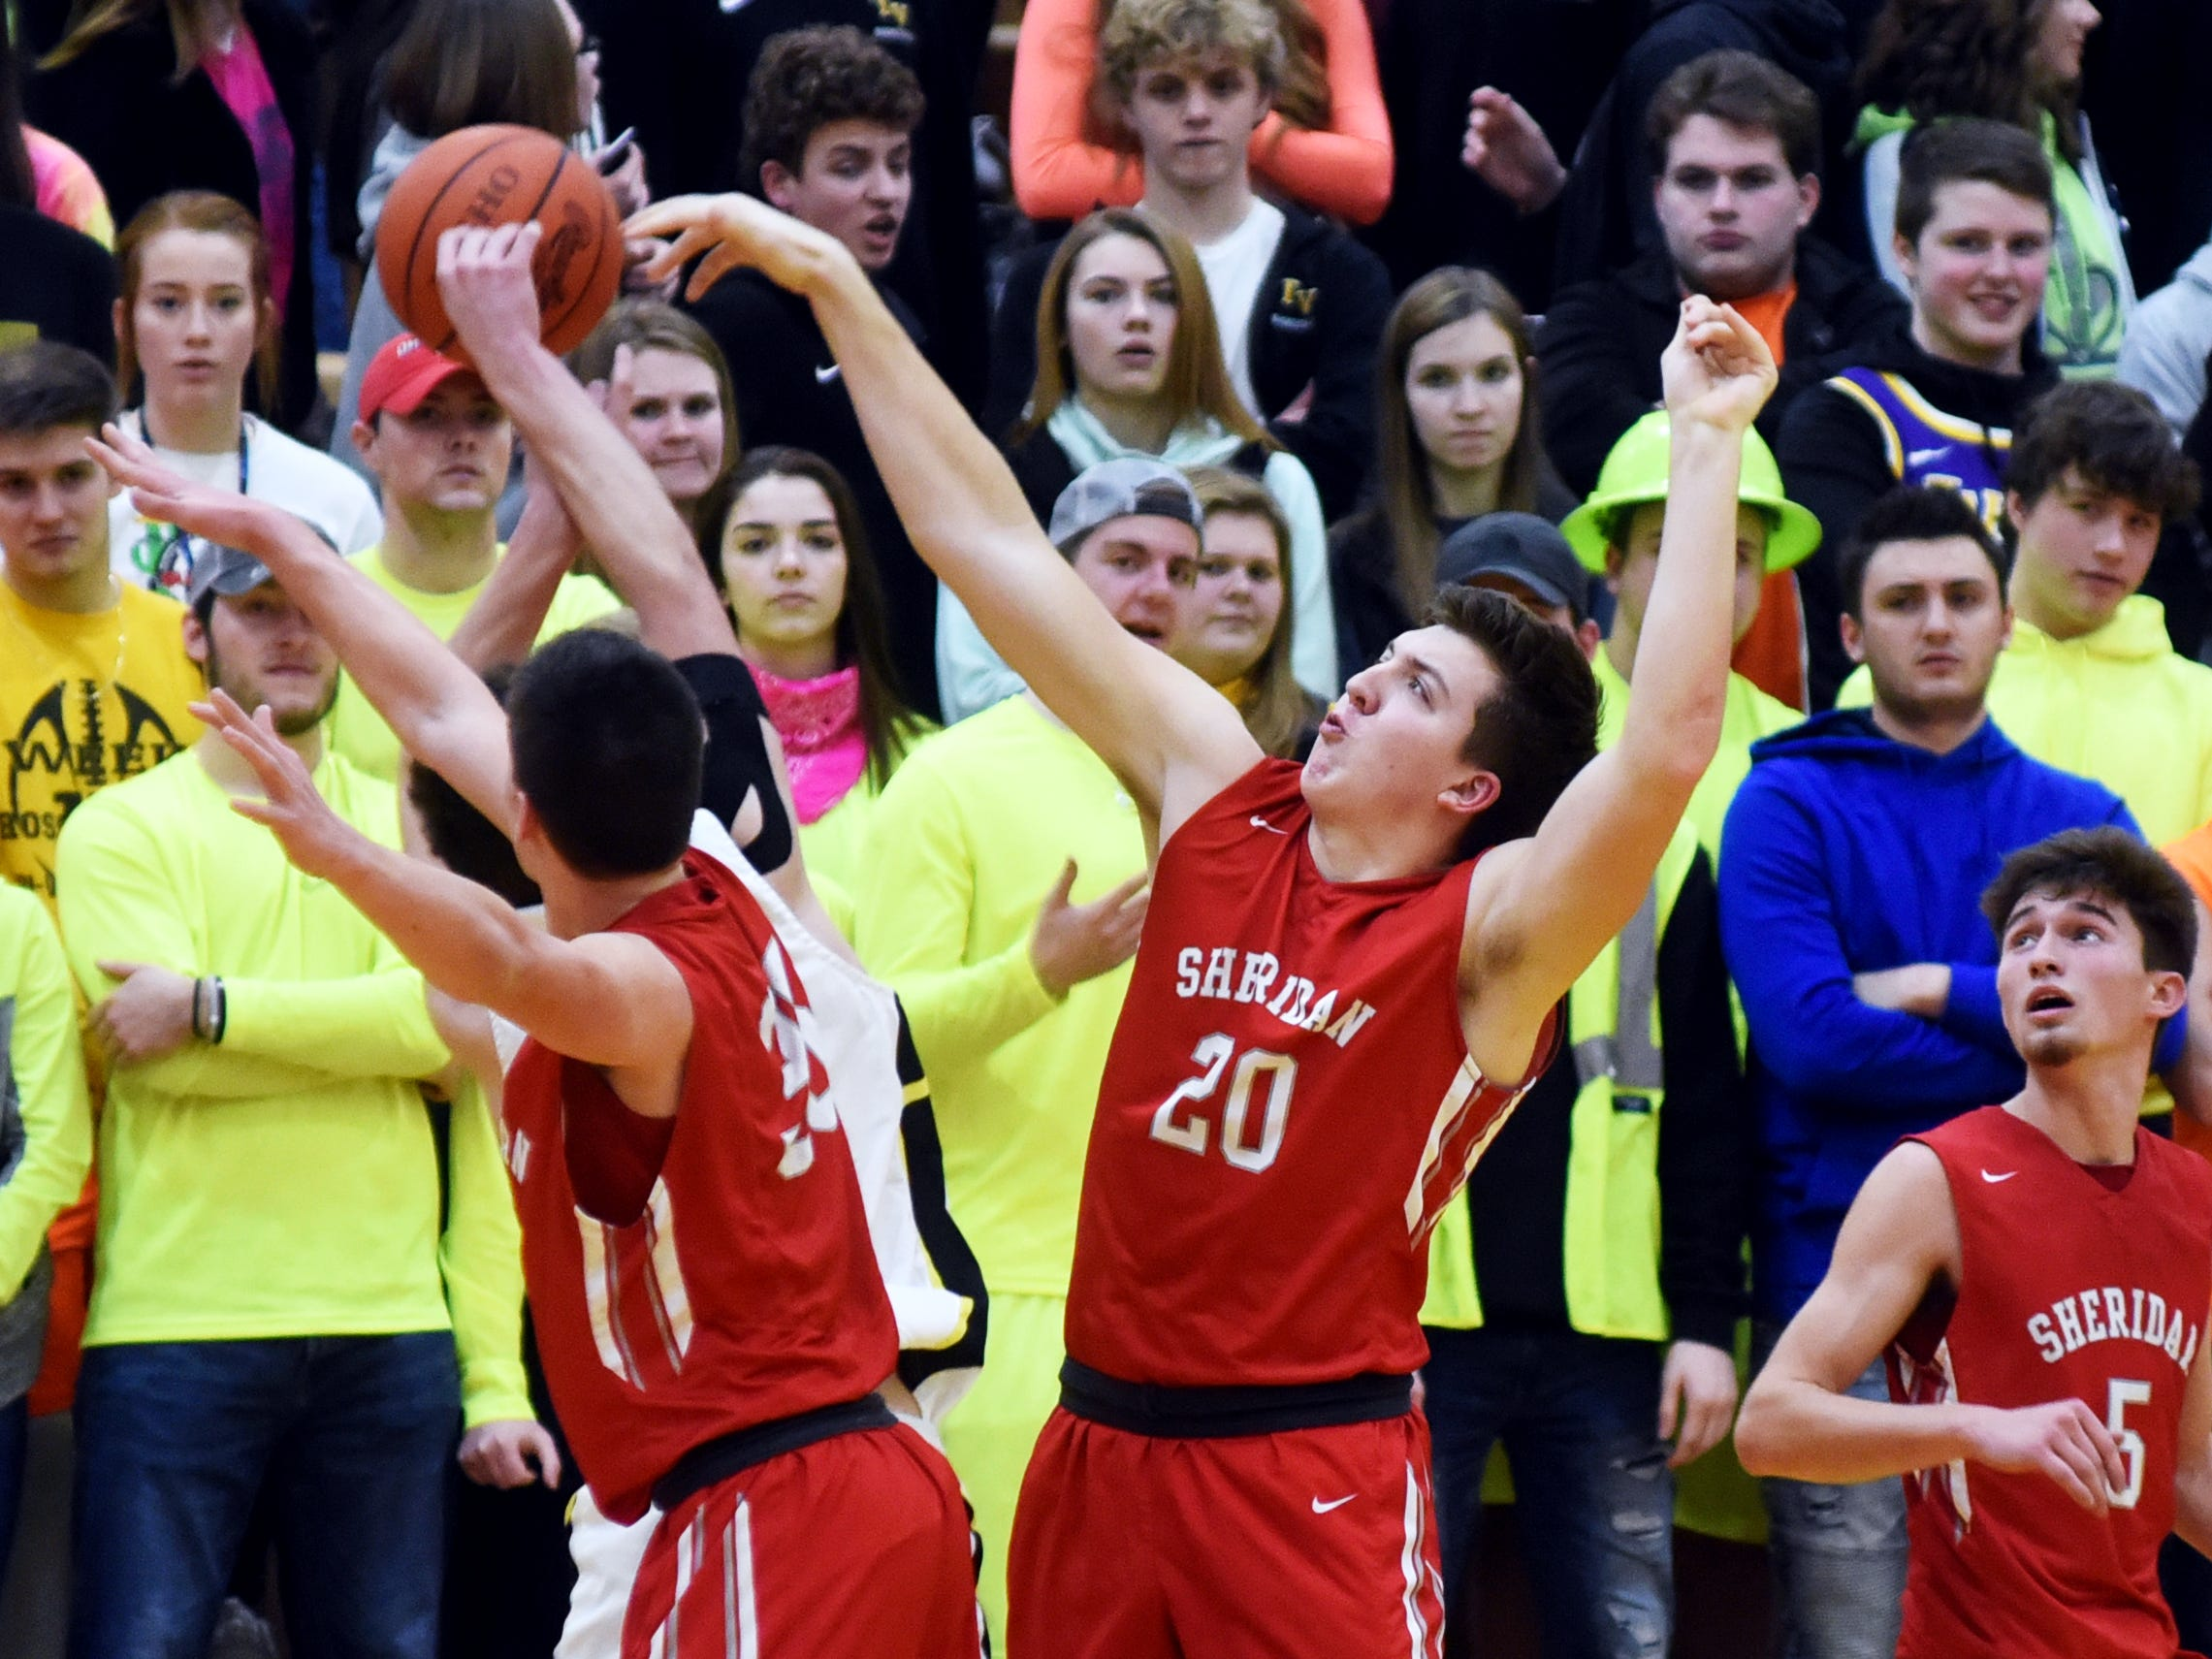 Sheridan's Shay Taylor, left, and Adam Boyle trap a Tri-Valley player on the baseline on Friday night in Dresden.